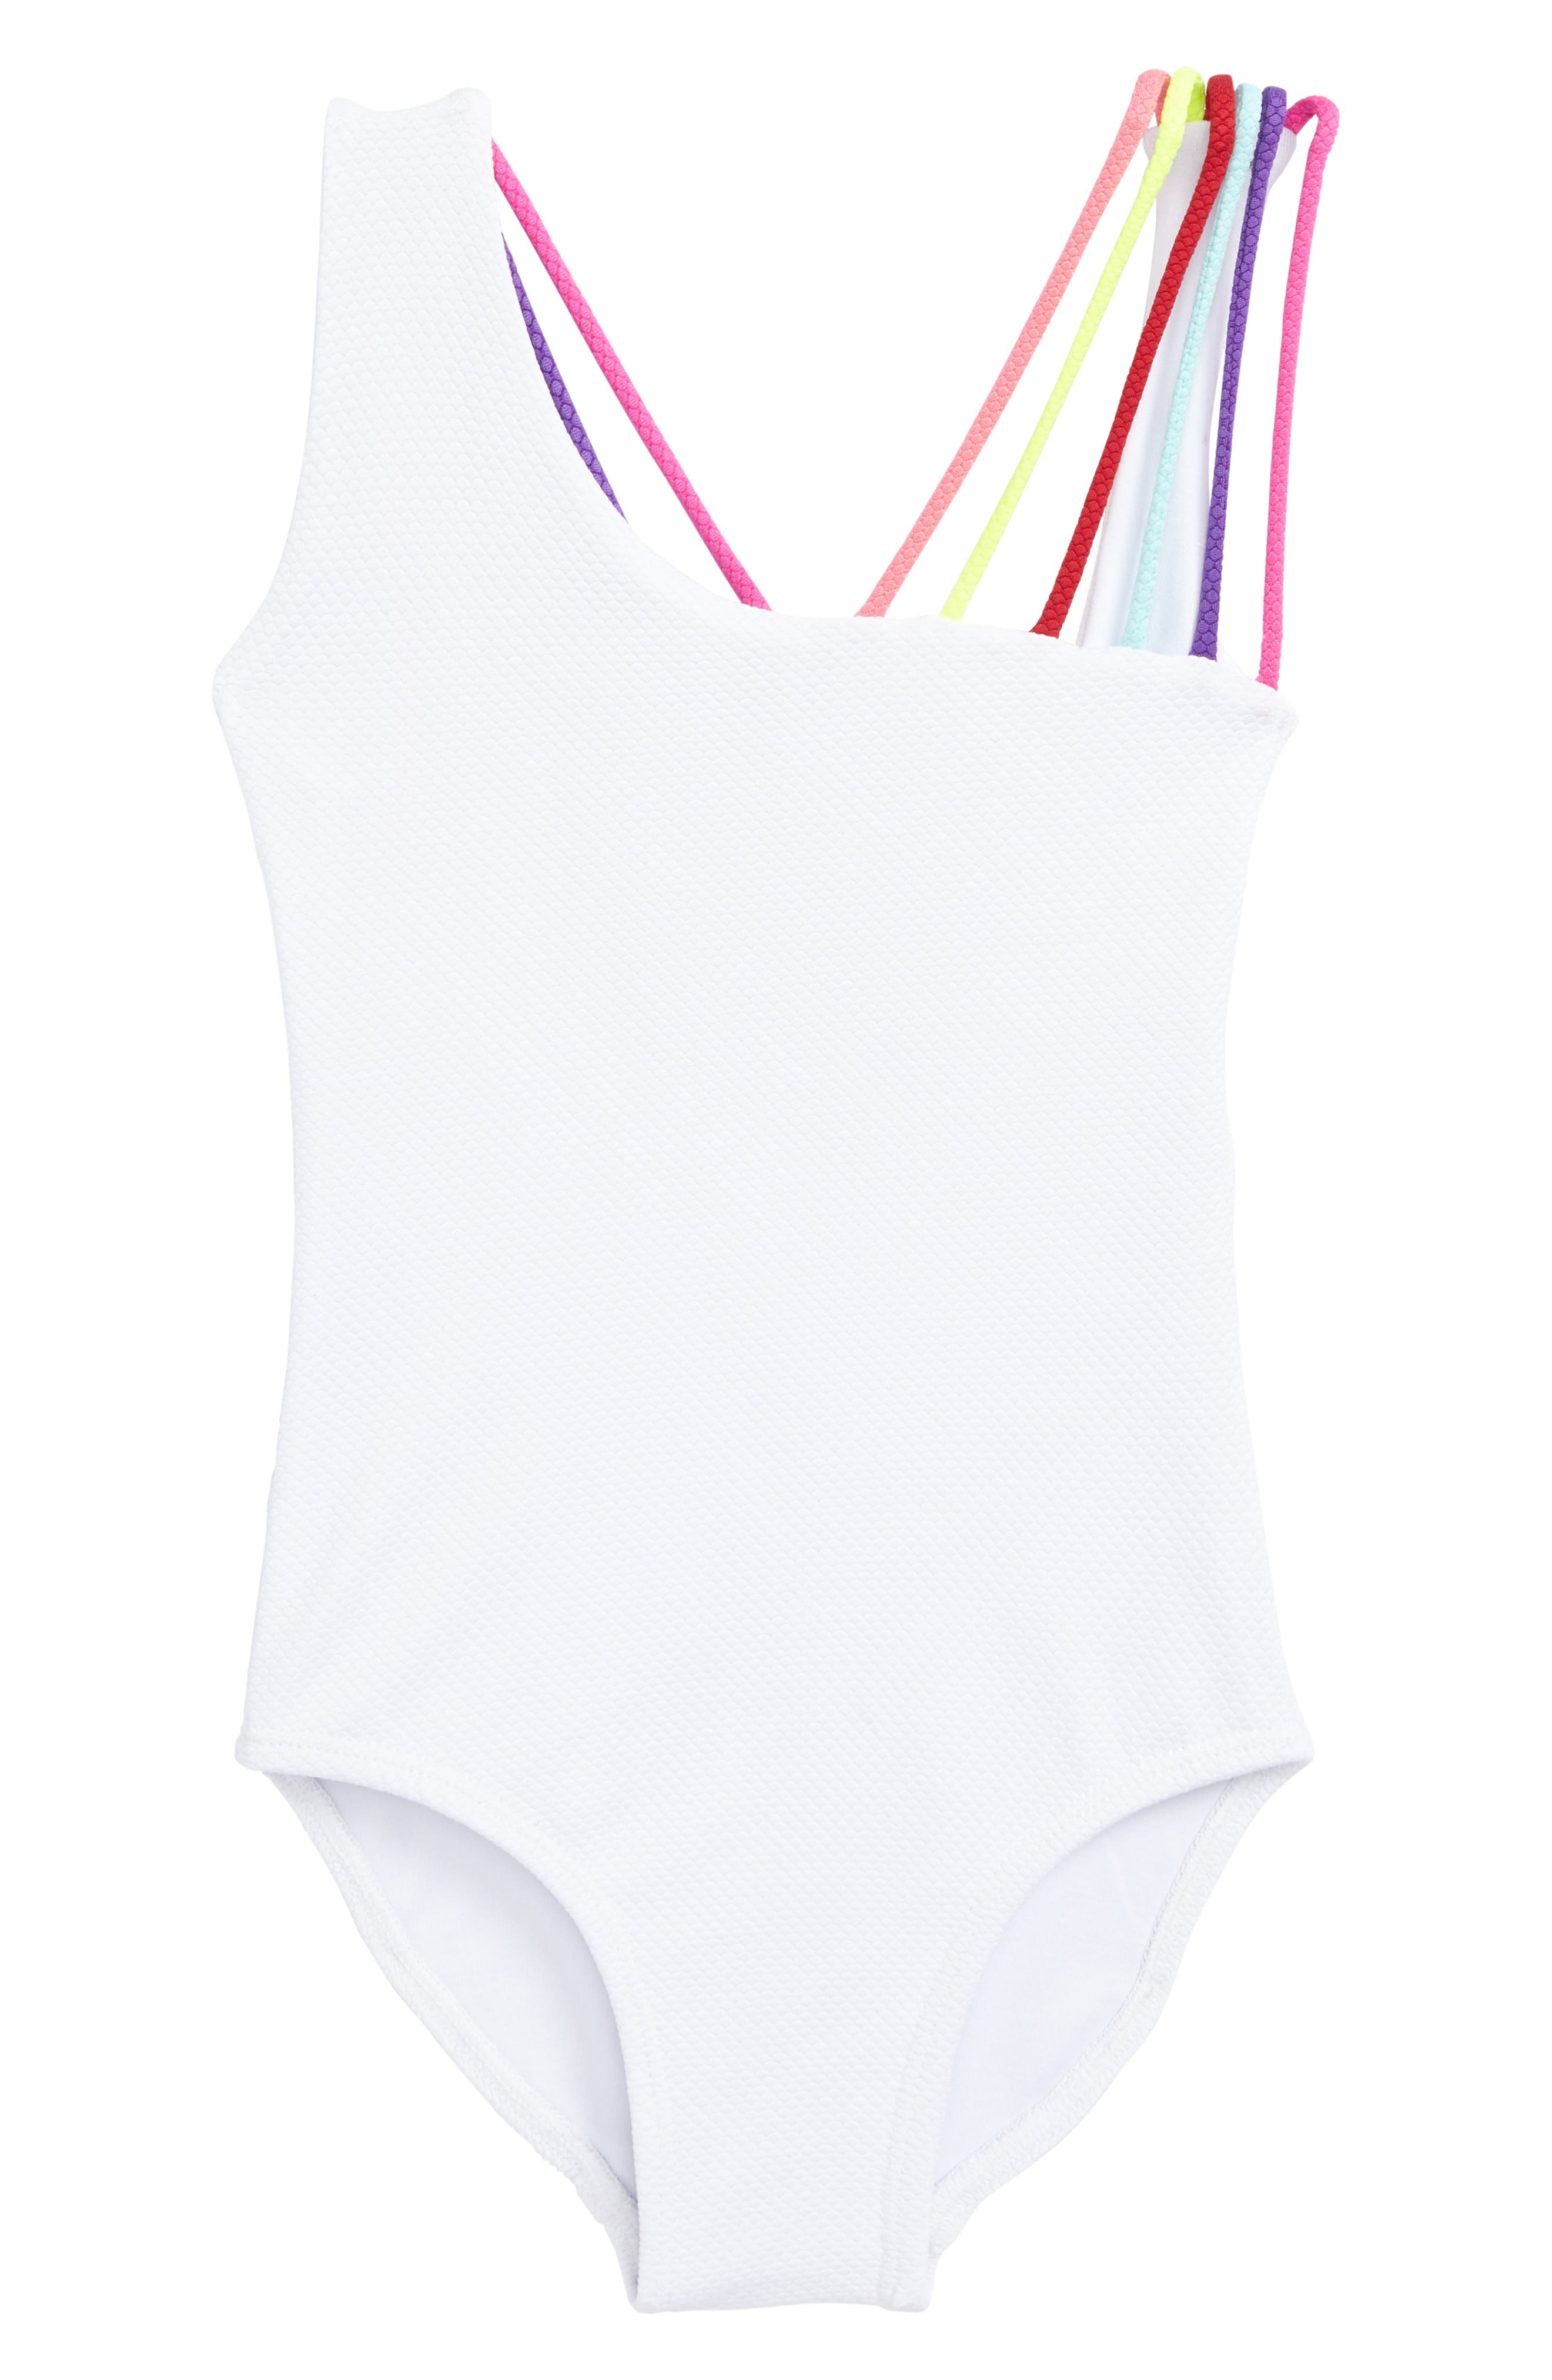 Main Image - Little Peixoto Olivia One-Piece Swimsuit (Toddler Girls & Little Girls)